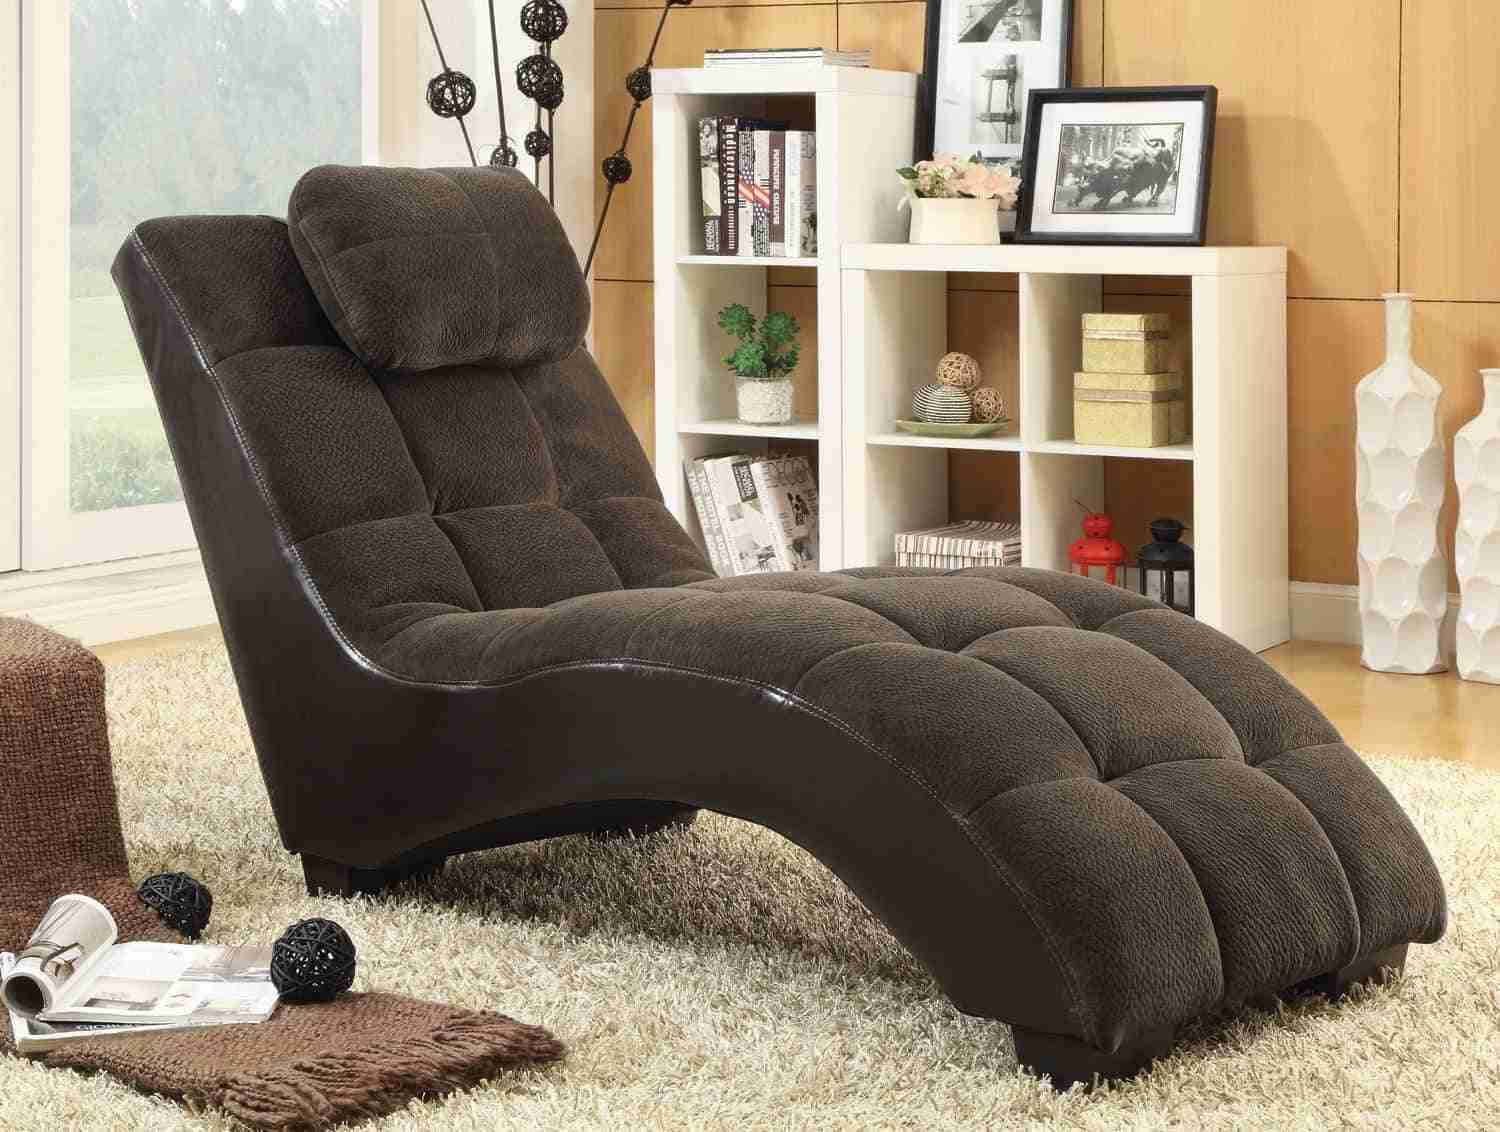 10 Best Chaise Lounge Chairs Reviews Buyer S Guide 2019